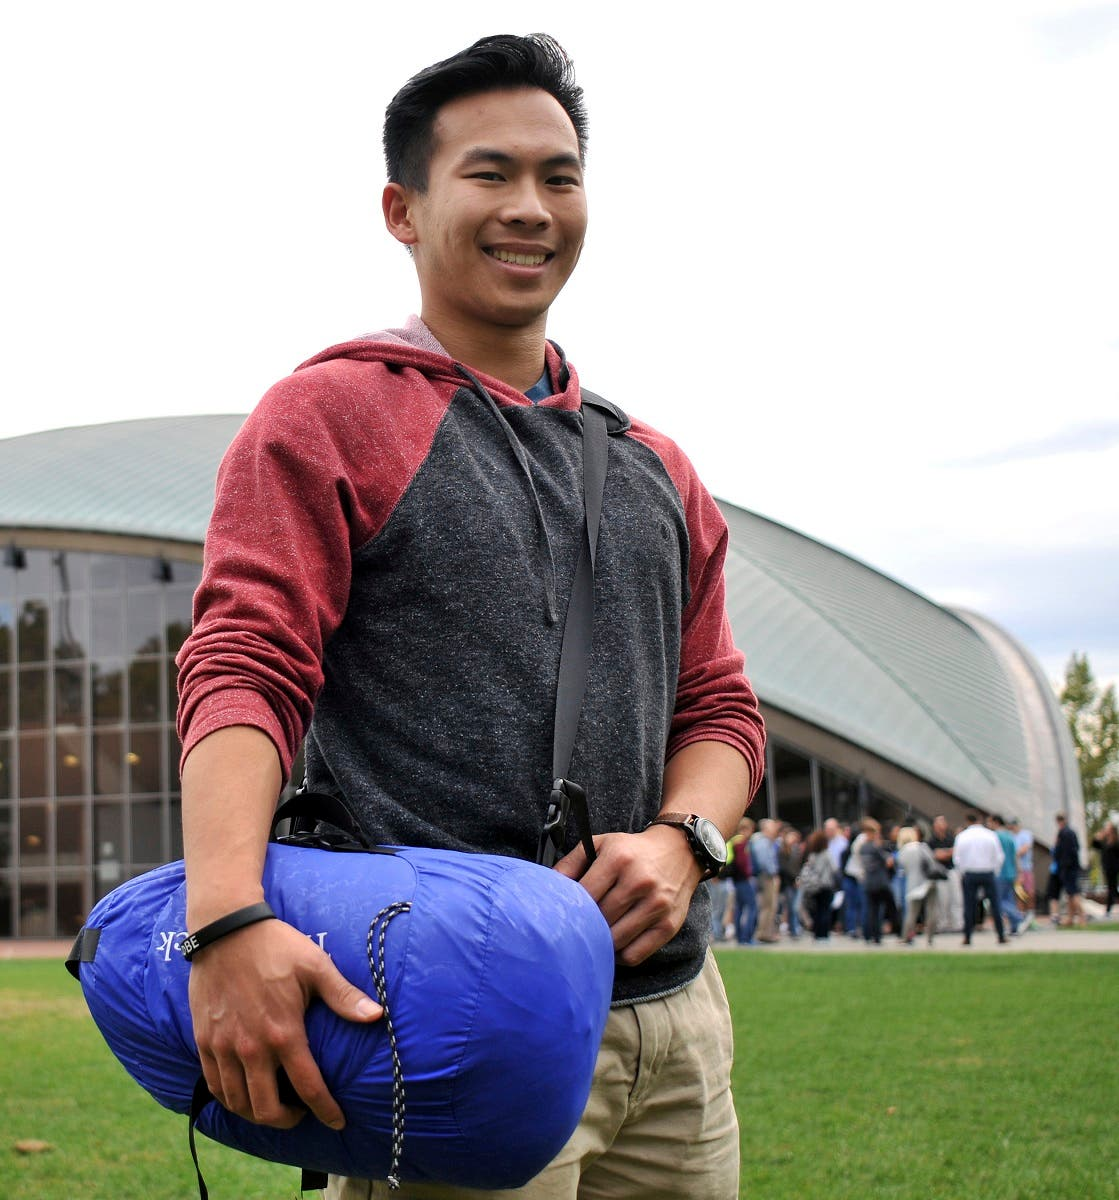 Vick Liu poses with his TravlerPack, a lightweight sleeping bag, outside the Kresge Auditorium at the Massachusetts Institute of Technology in Cambridge, Mass. (AP)